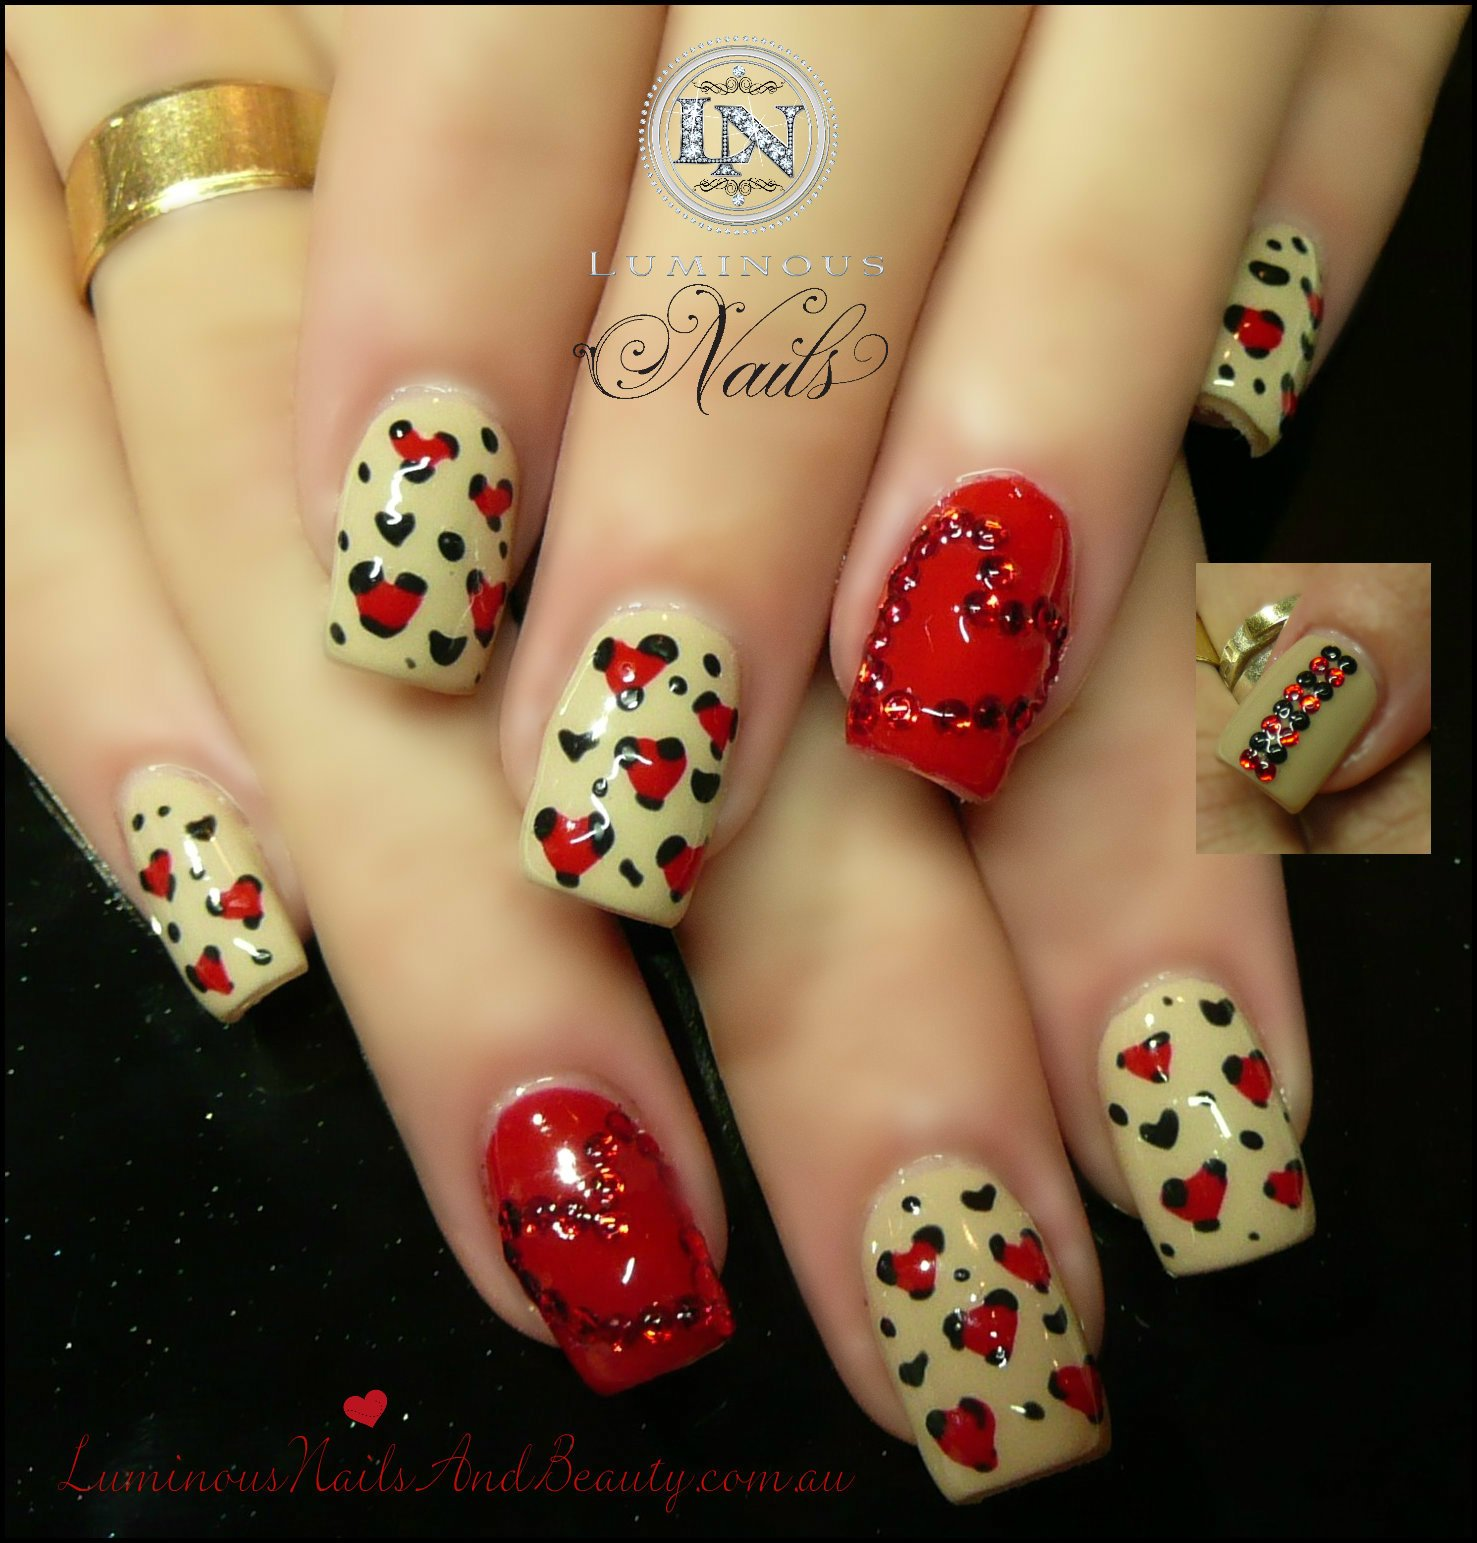 Nail Designs Red Heart : Pretty nail designs for this new season